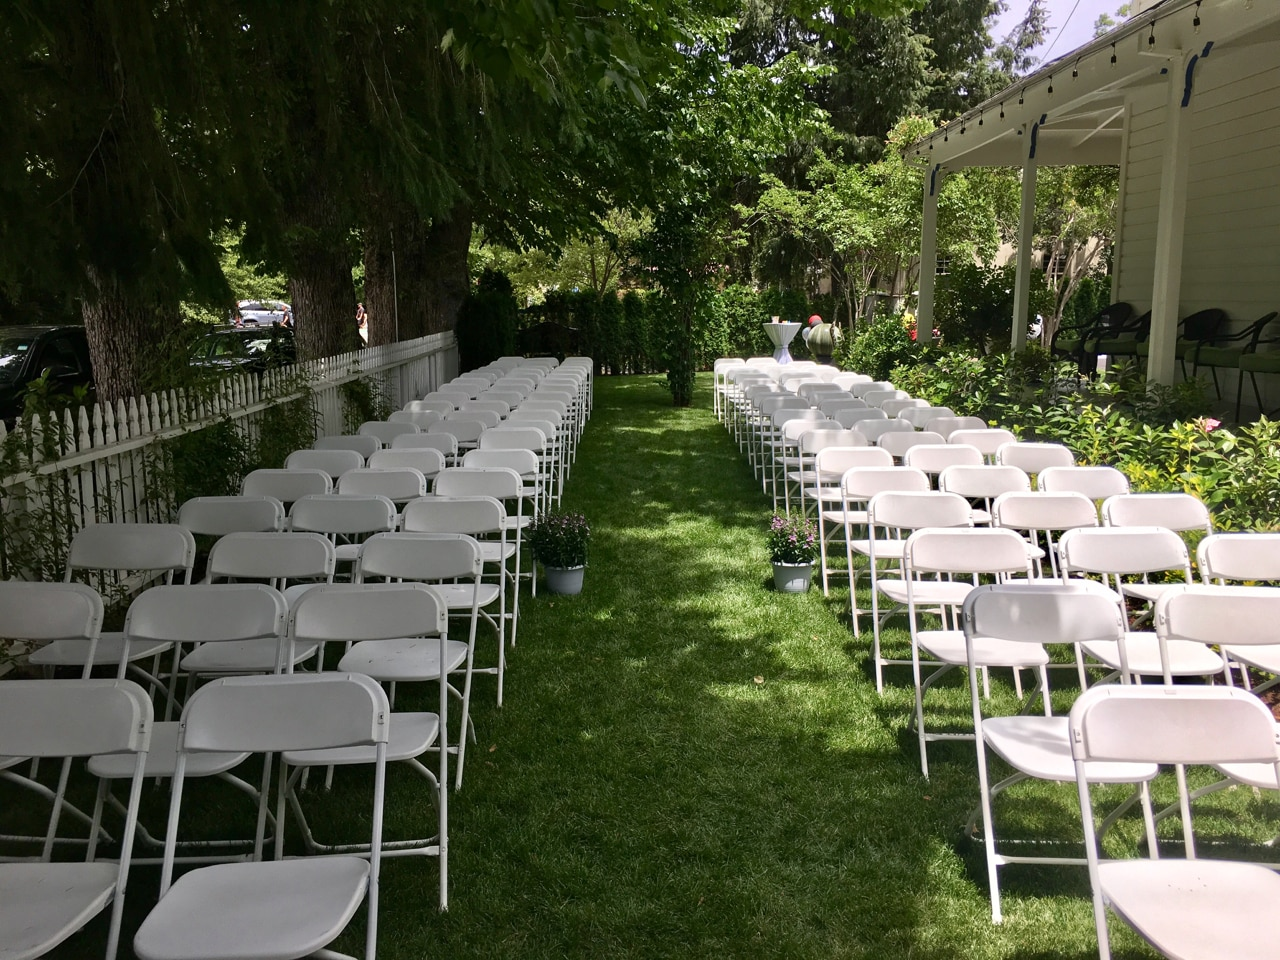 white chairs in green lawn garden